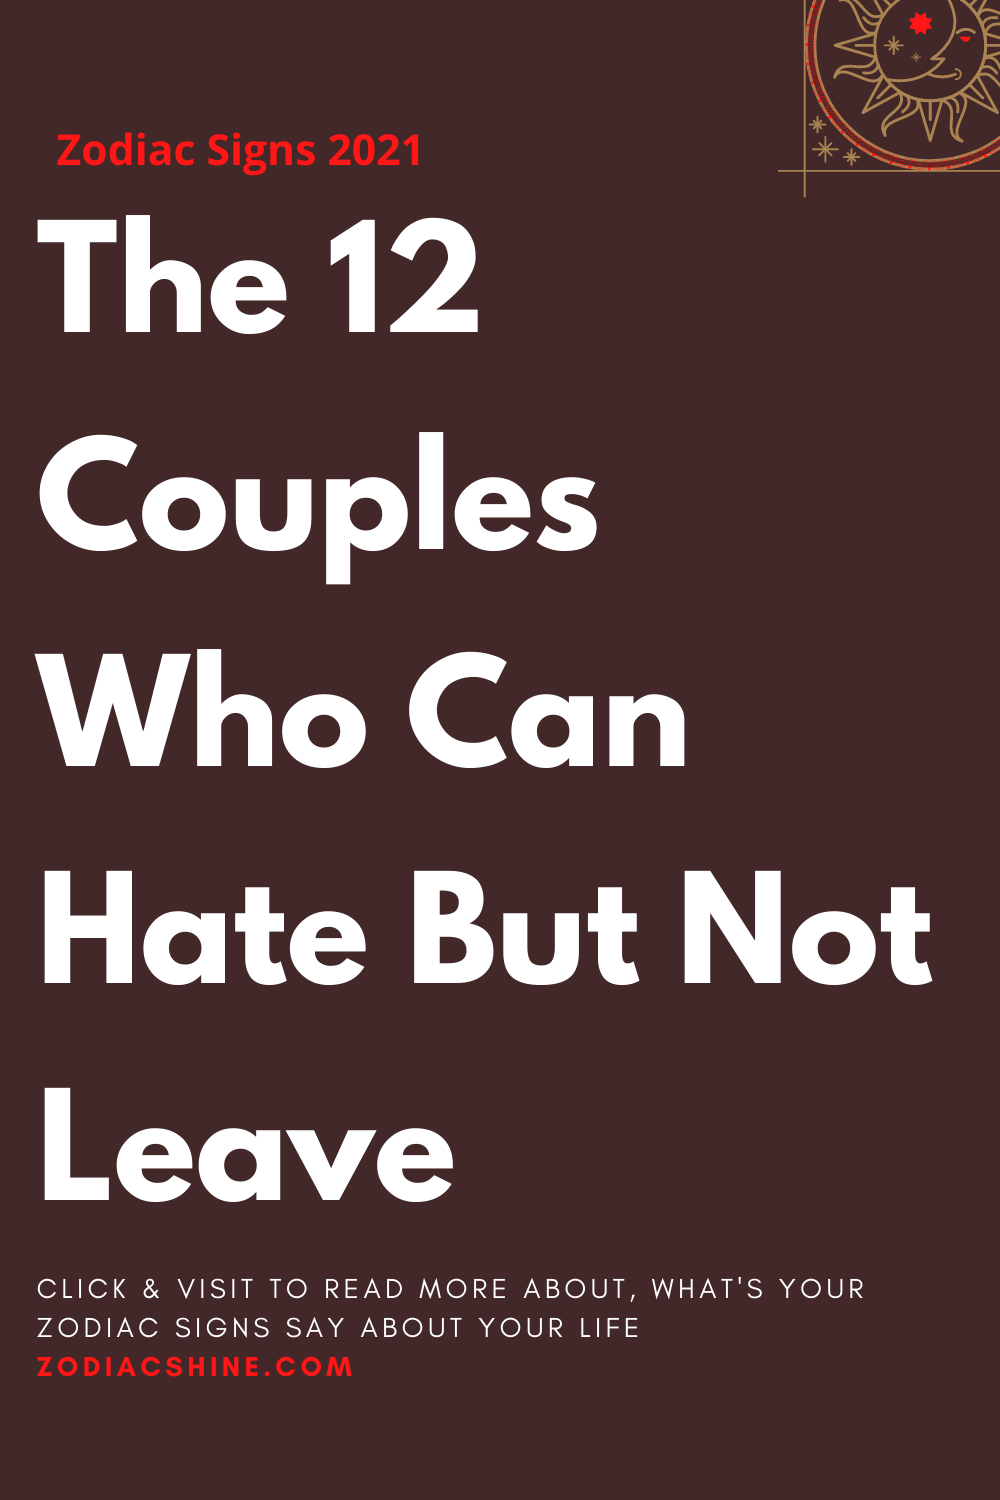 The 12 Couples Who Can Hate But Not Leave